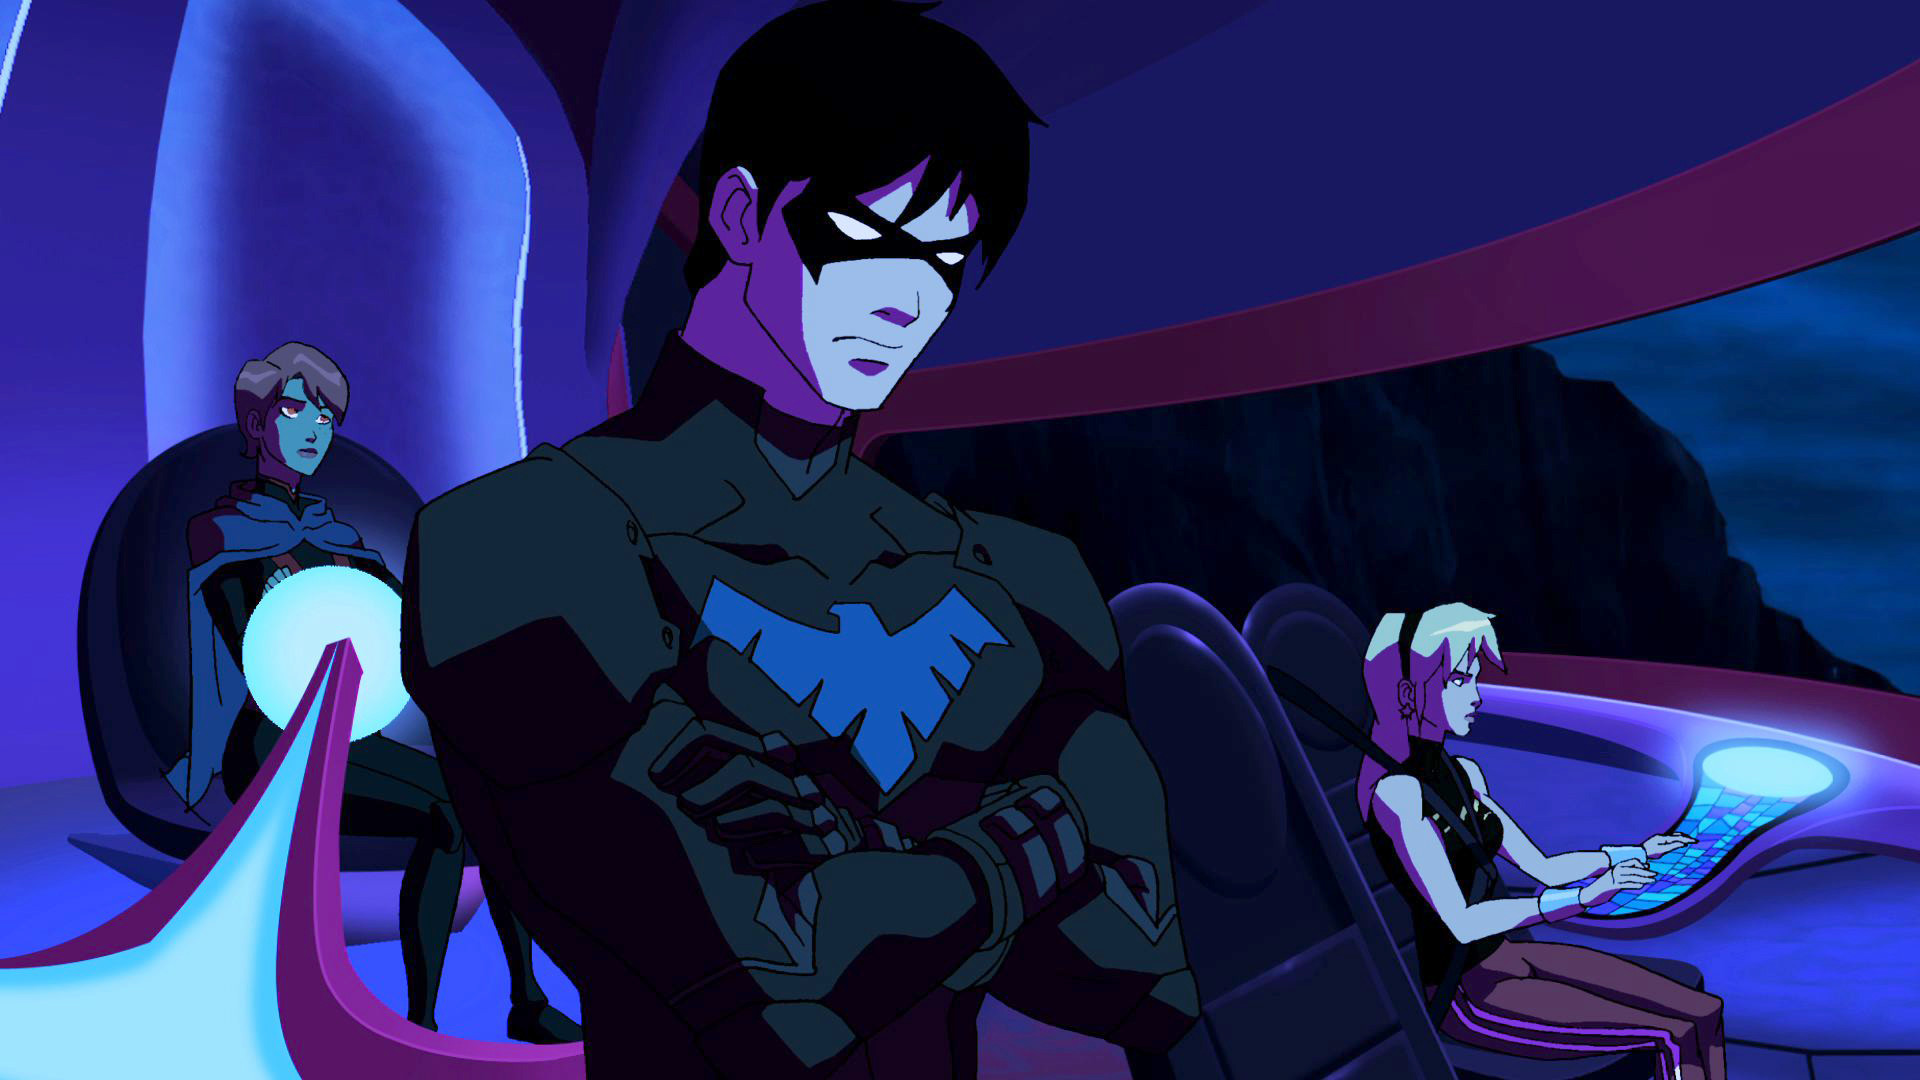 1920x1080 Young Justice: Invasion Wallpaper 17 - 1920 X 1080